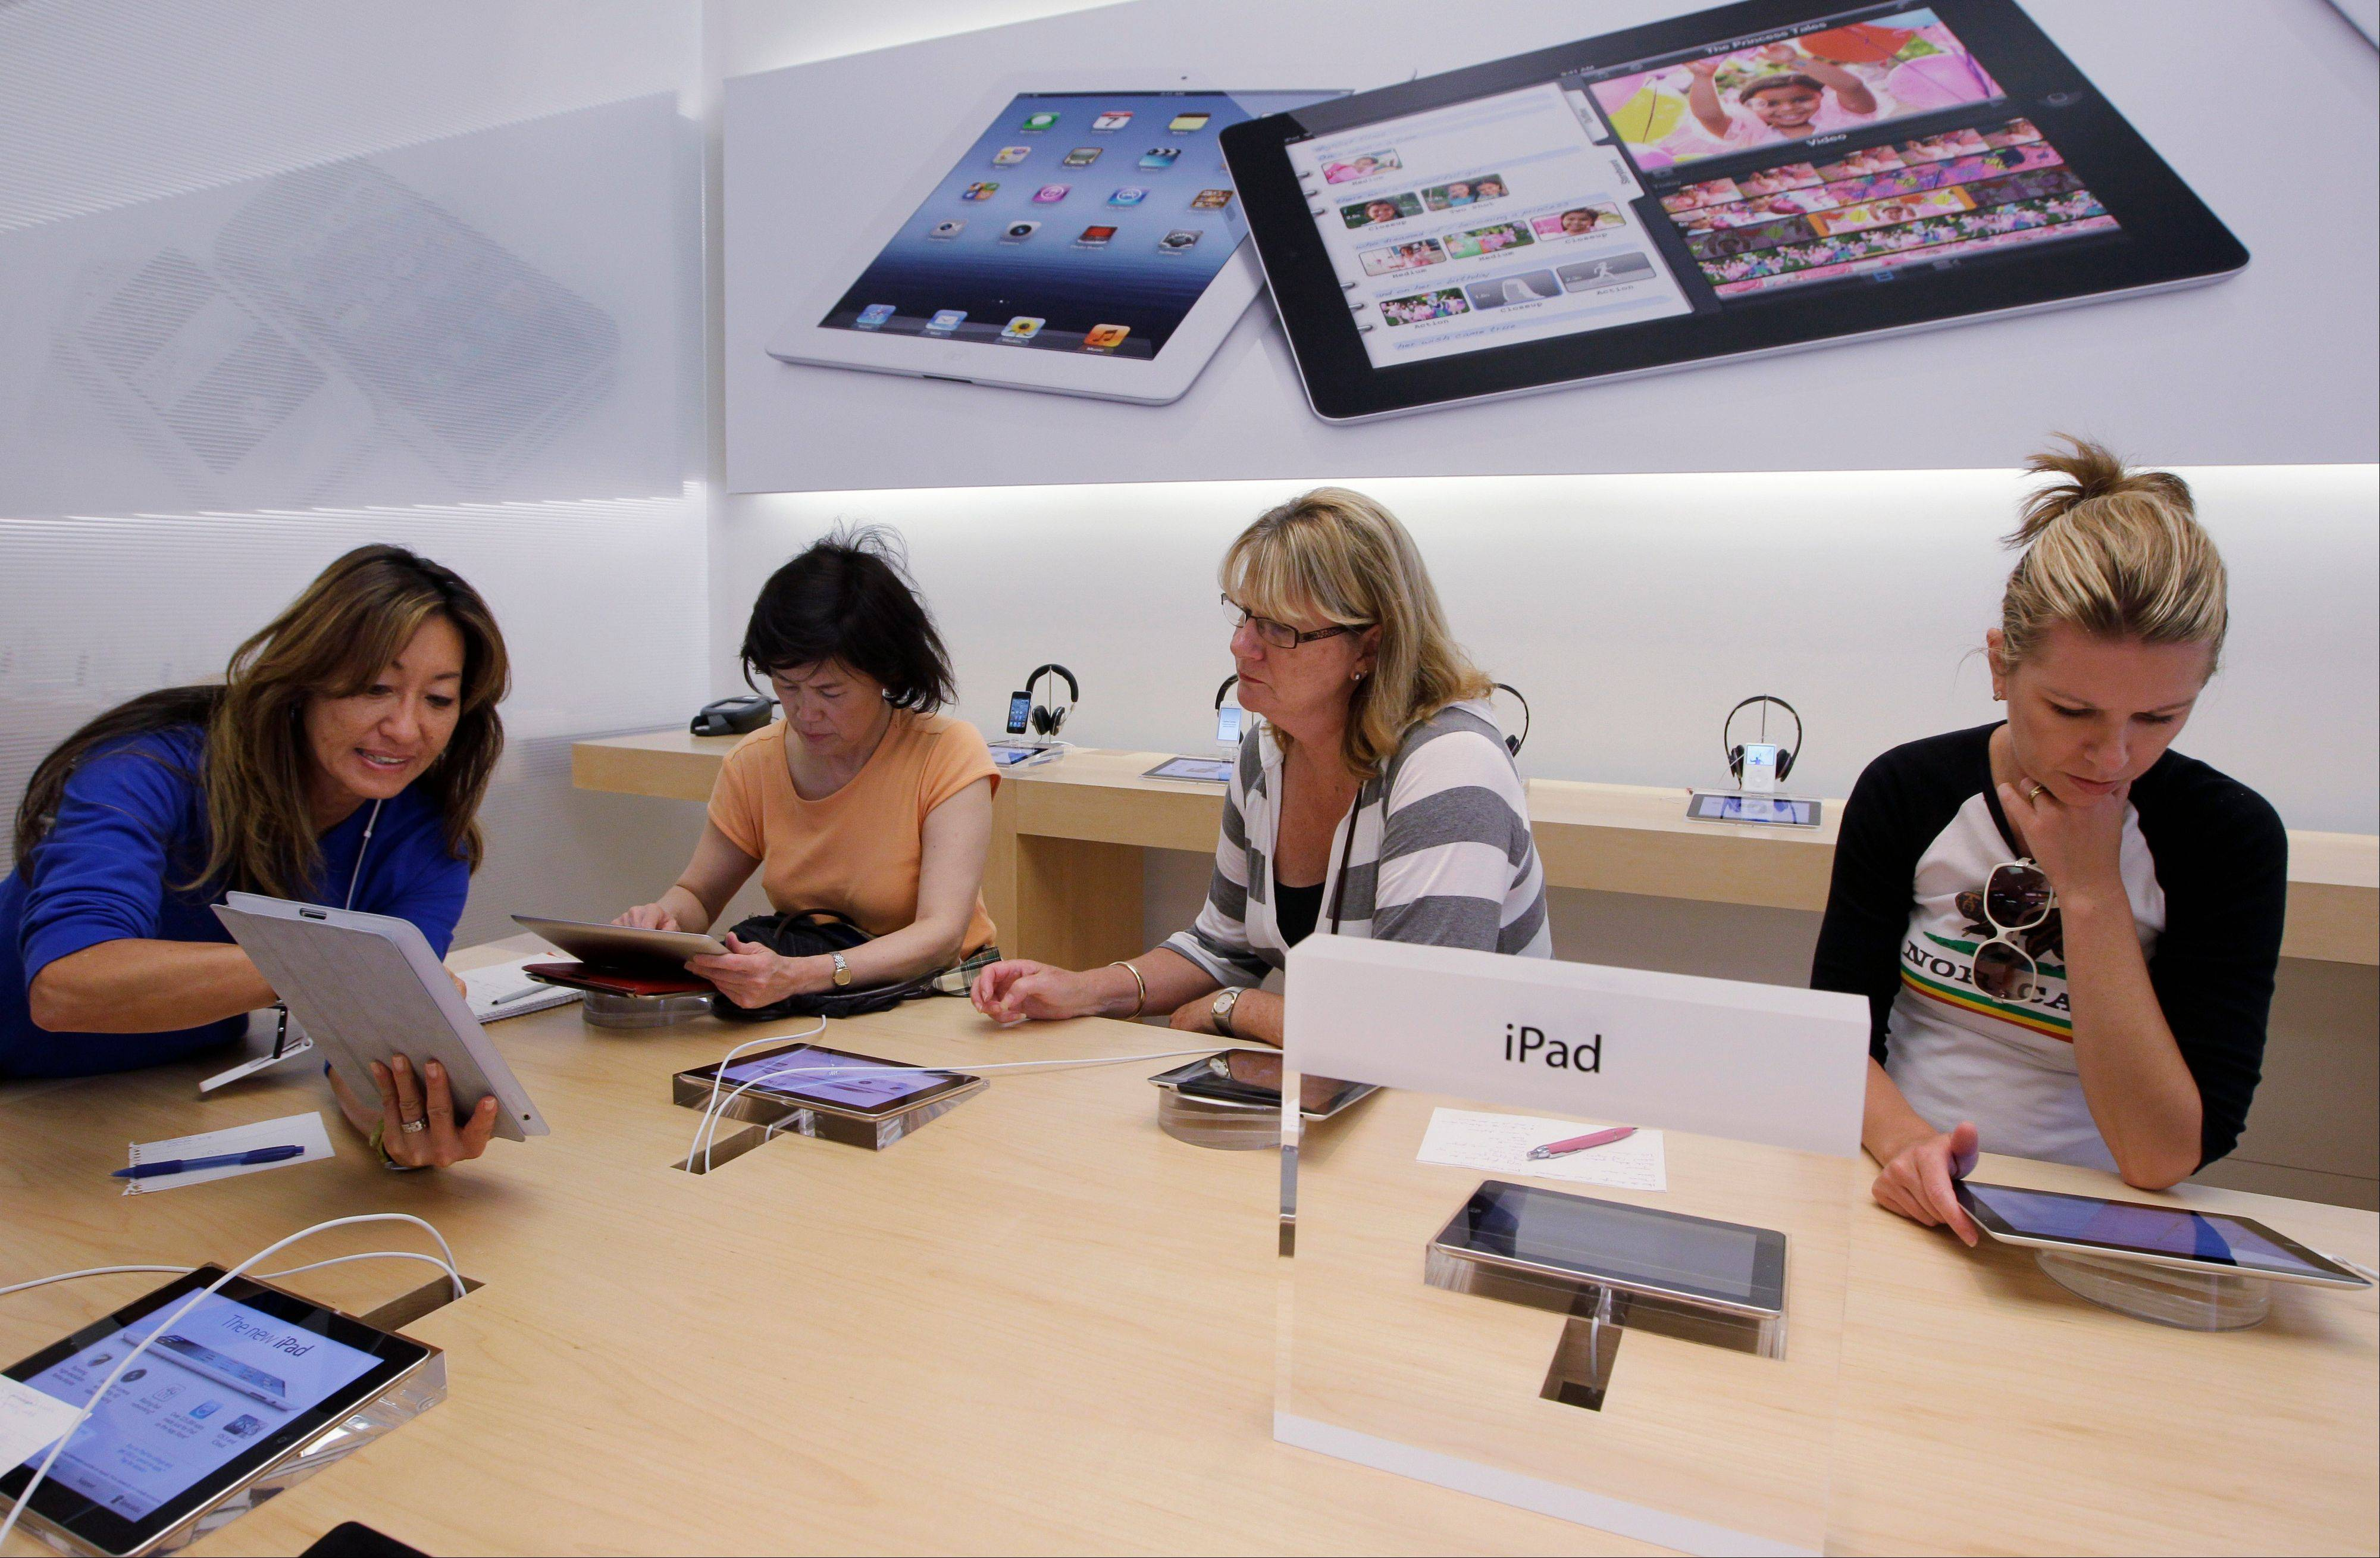 An Apple worker, left, gives a tutorial on Apple iPad to customers at an Apple store in Palo Alto, Calif.